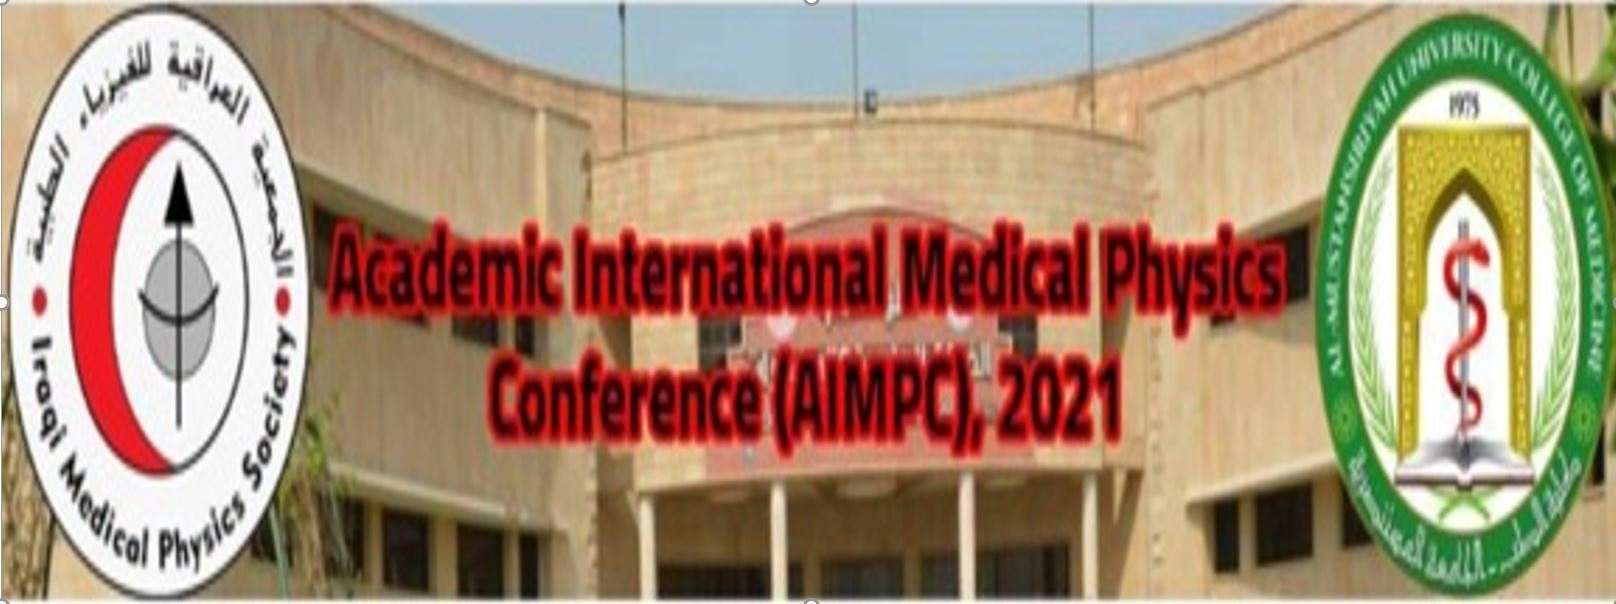 AIMPC : Academic International Medical Physics Conference 2021 in Iraq